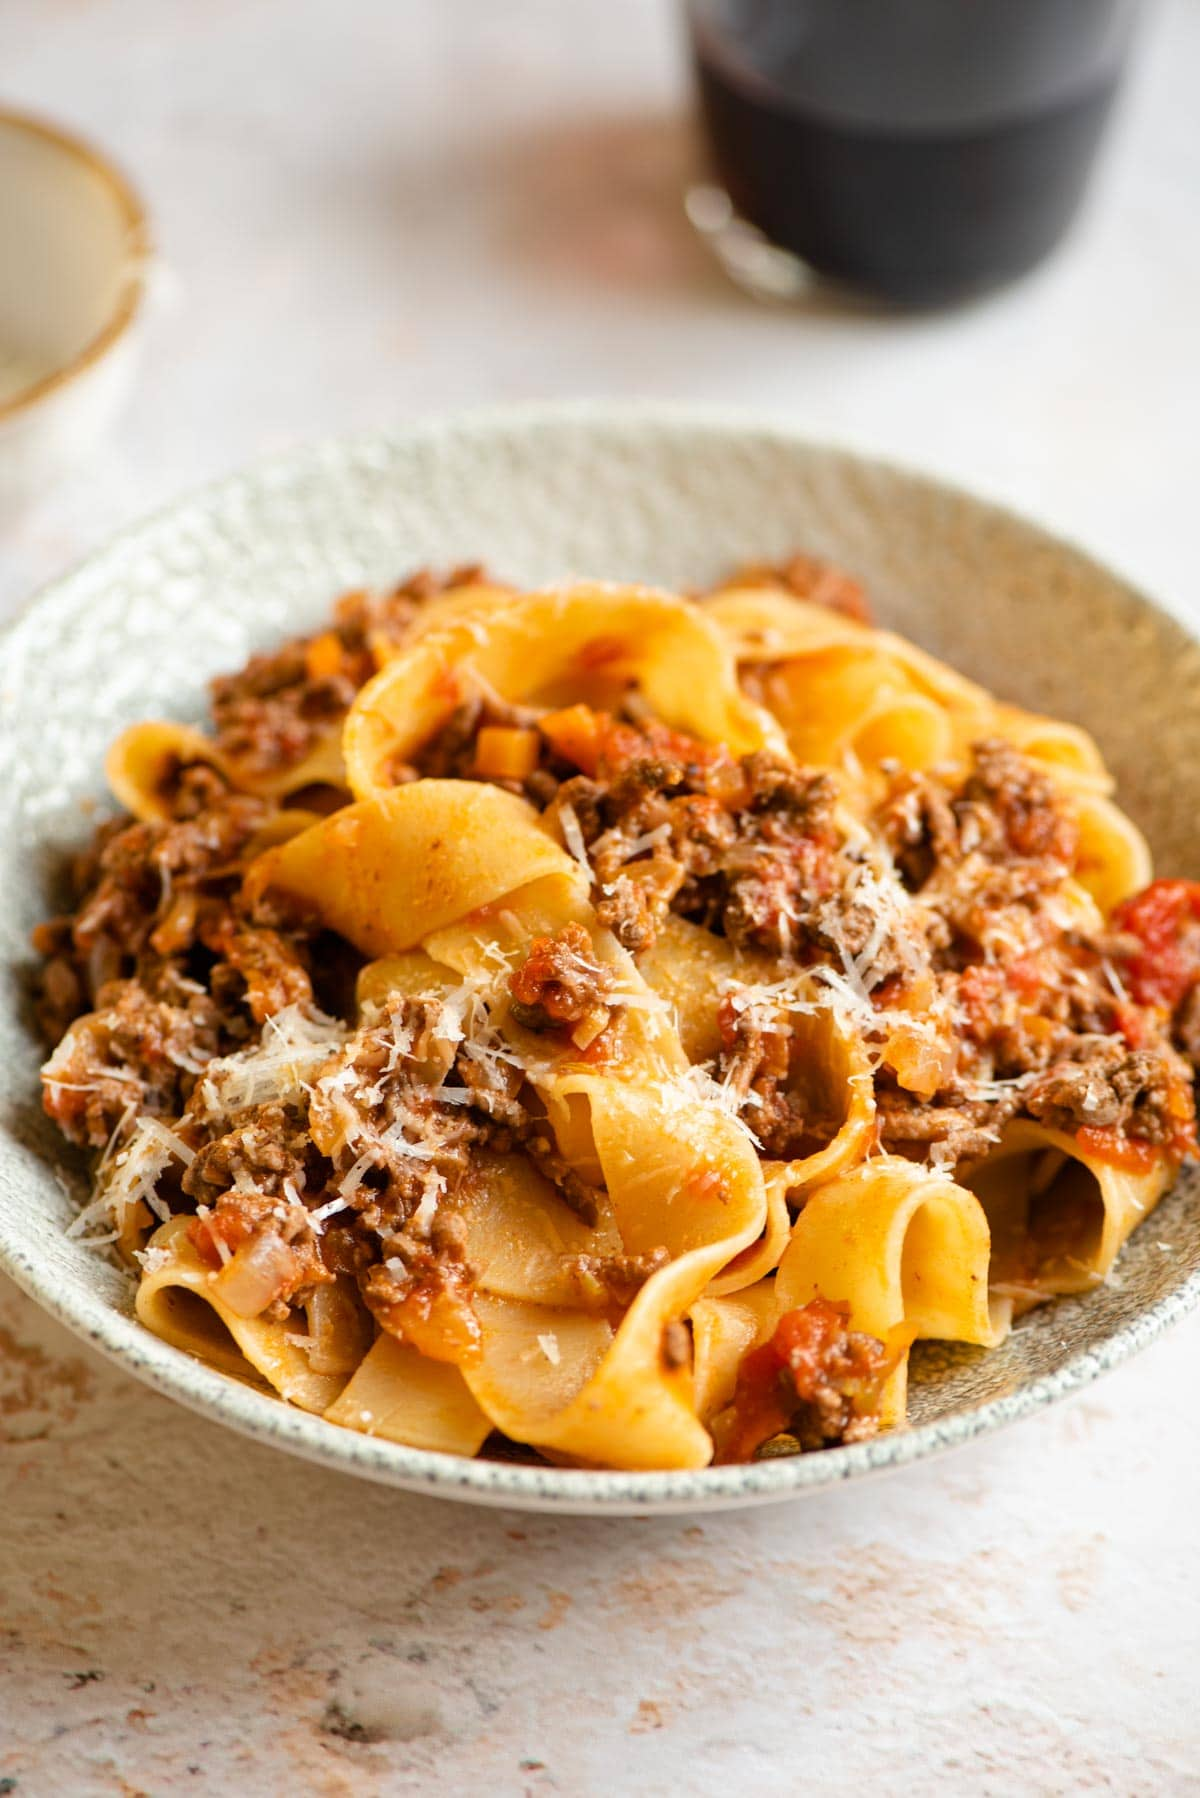 Lamb ragu a pappardelle pasta in a bowl